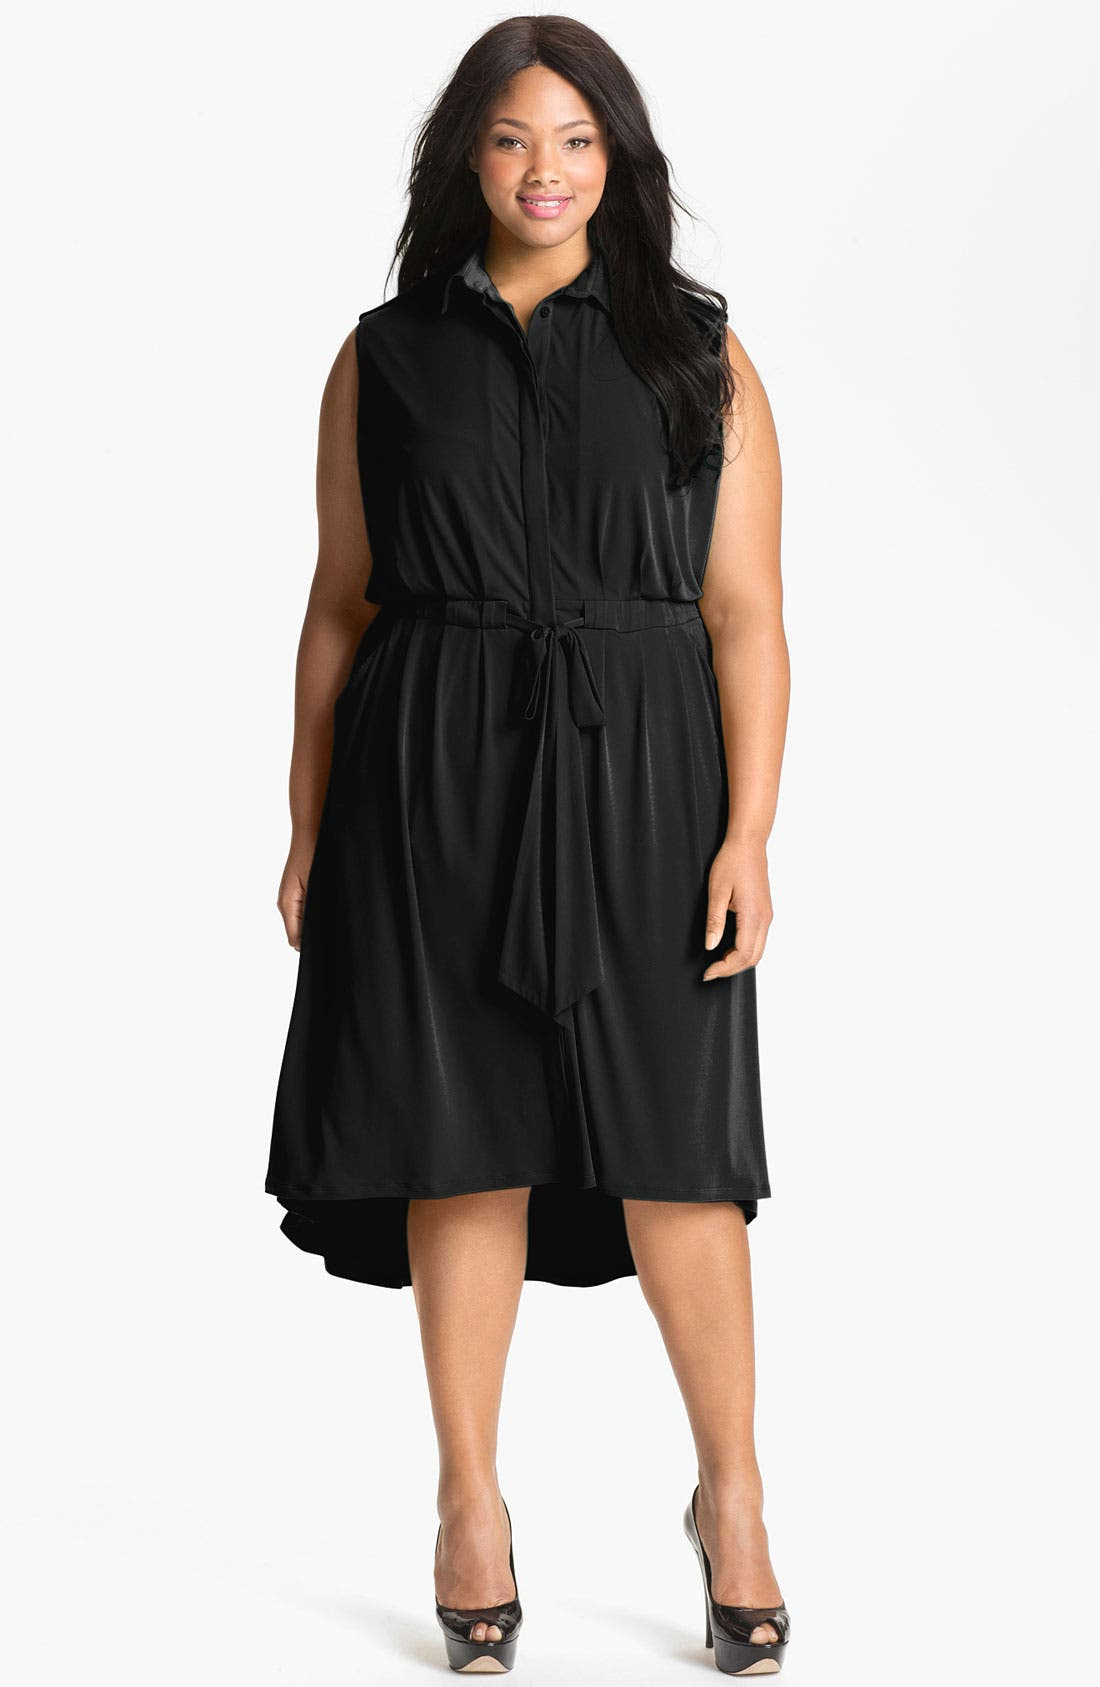 Alternate Image 1 Selected - Vince Camuto Sleeveless Shirtdress (Plus Size) (Online Only)